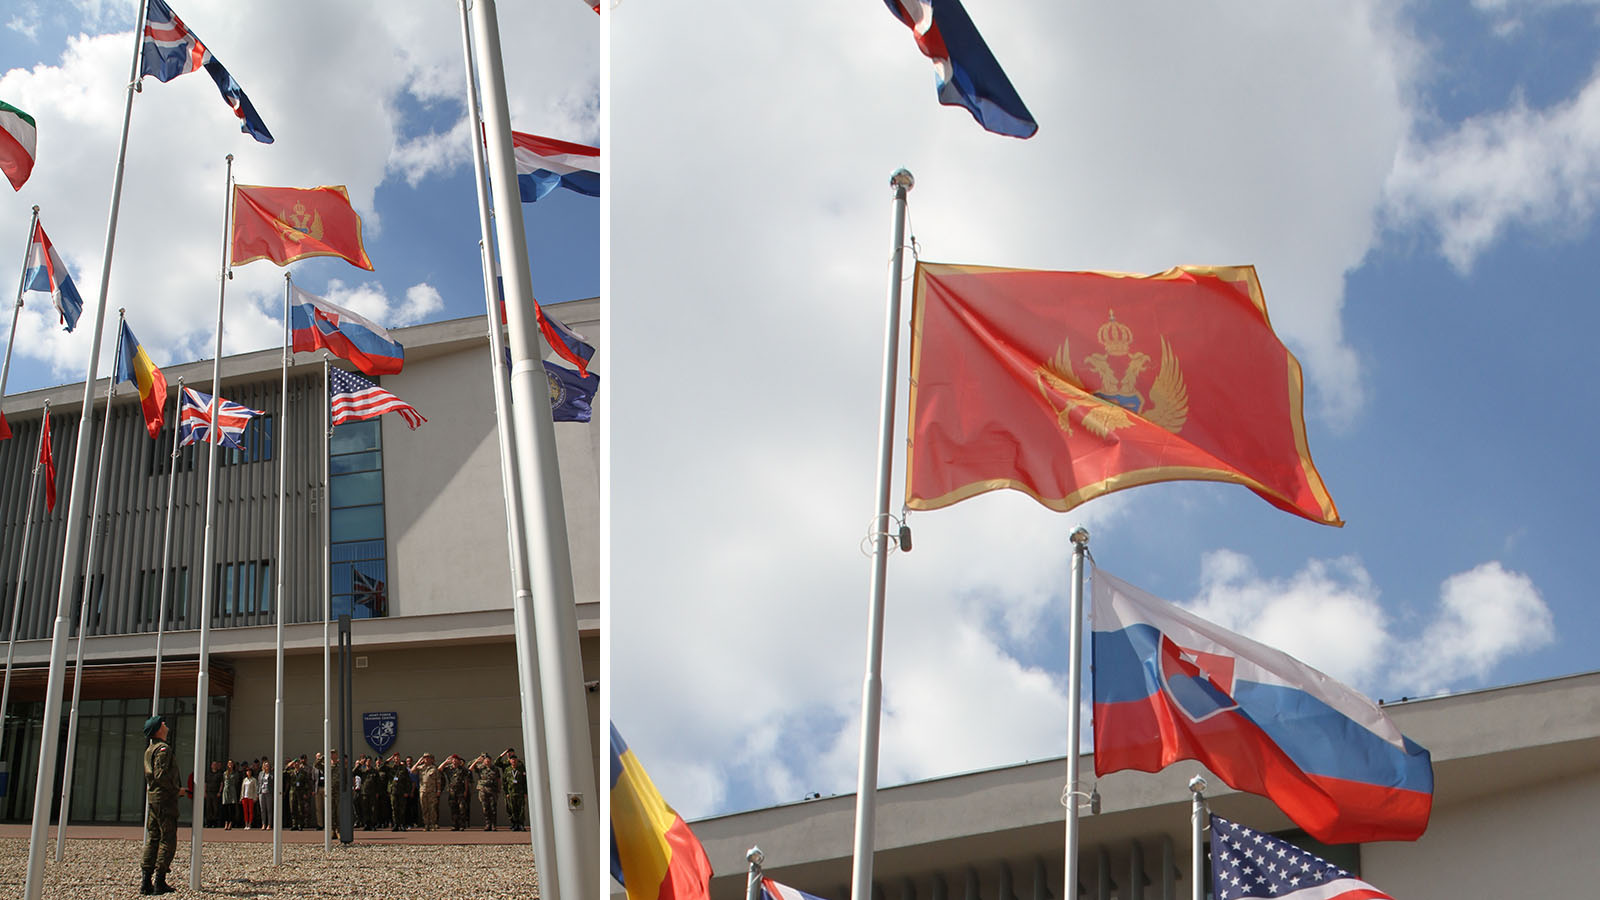 JFTC Welcomes Montenegro in NATO